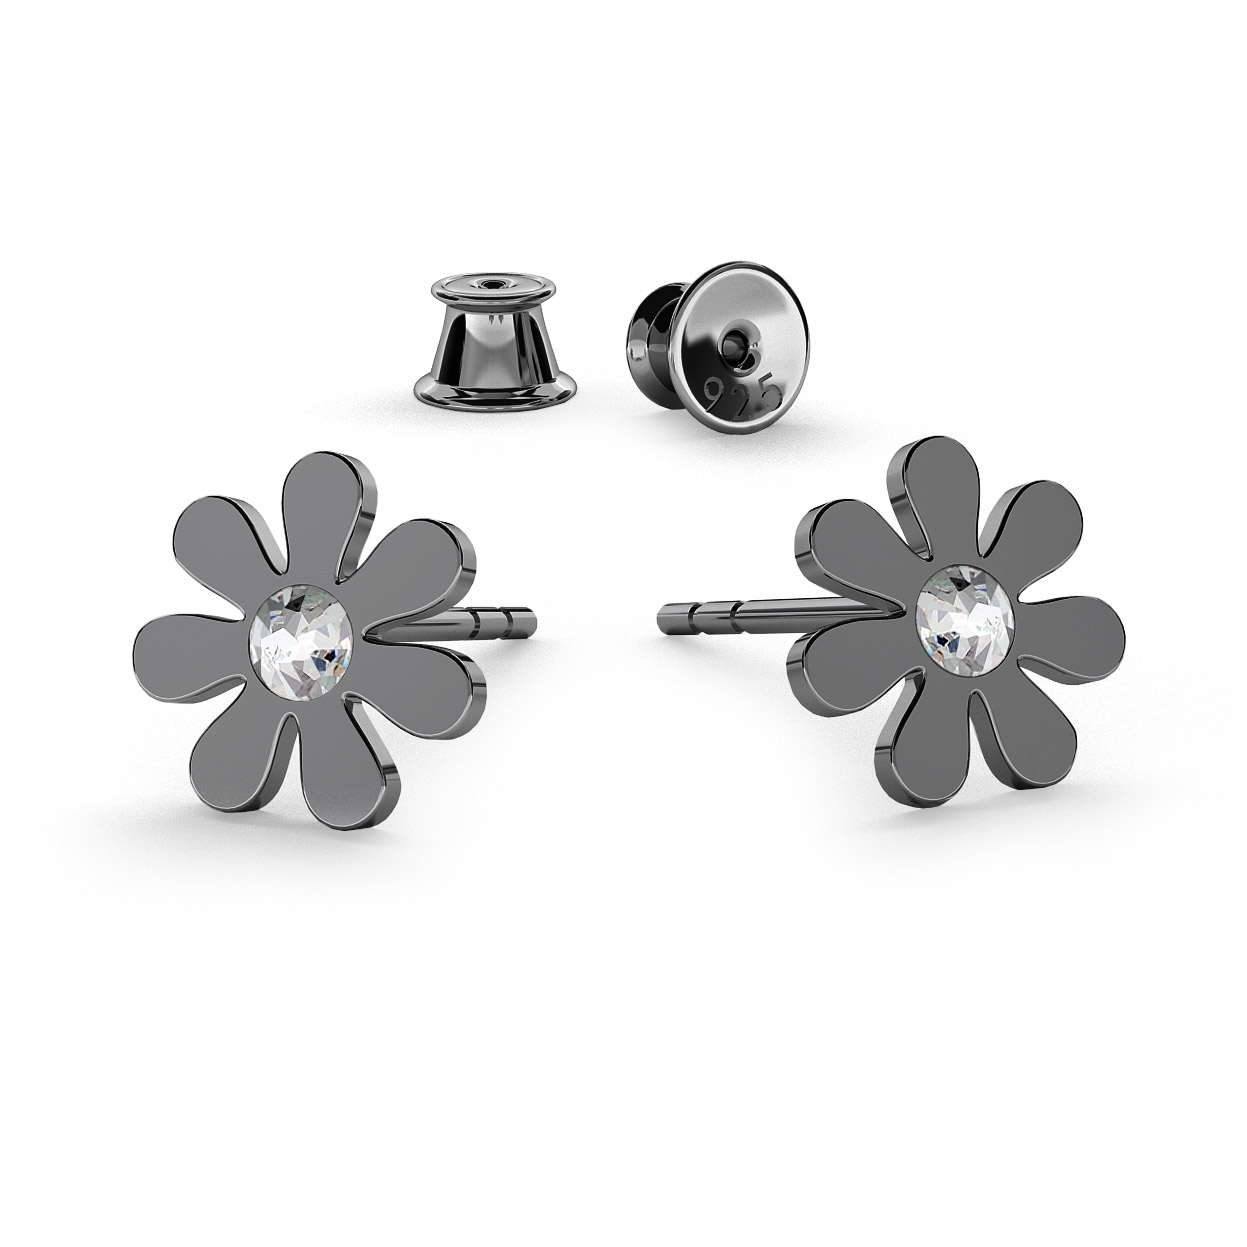 Daisy Earrings Studs, Swarovski 2058 Ss 7, Sterling Silver (925) Rhodium Or